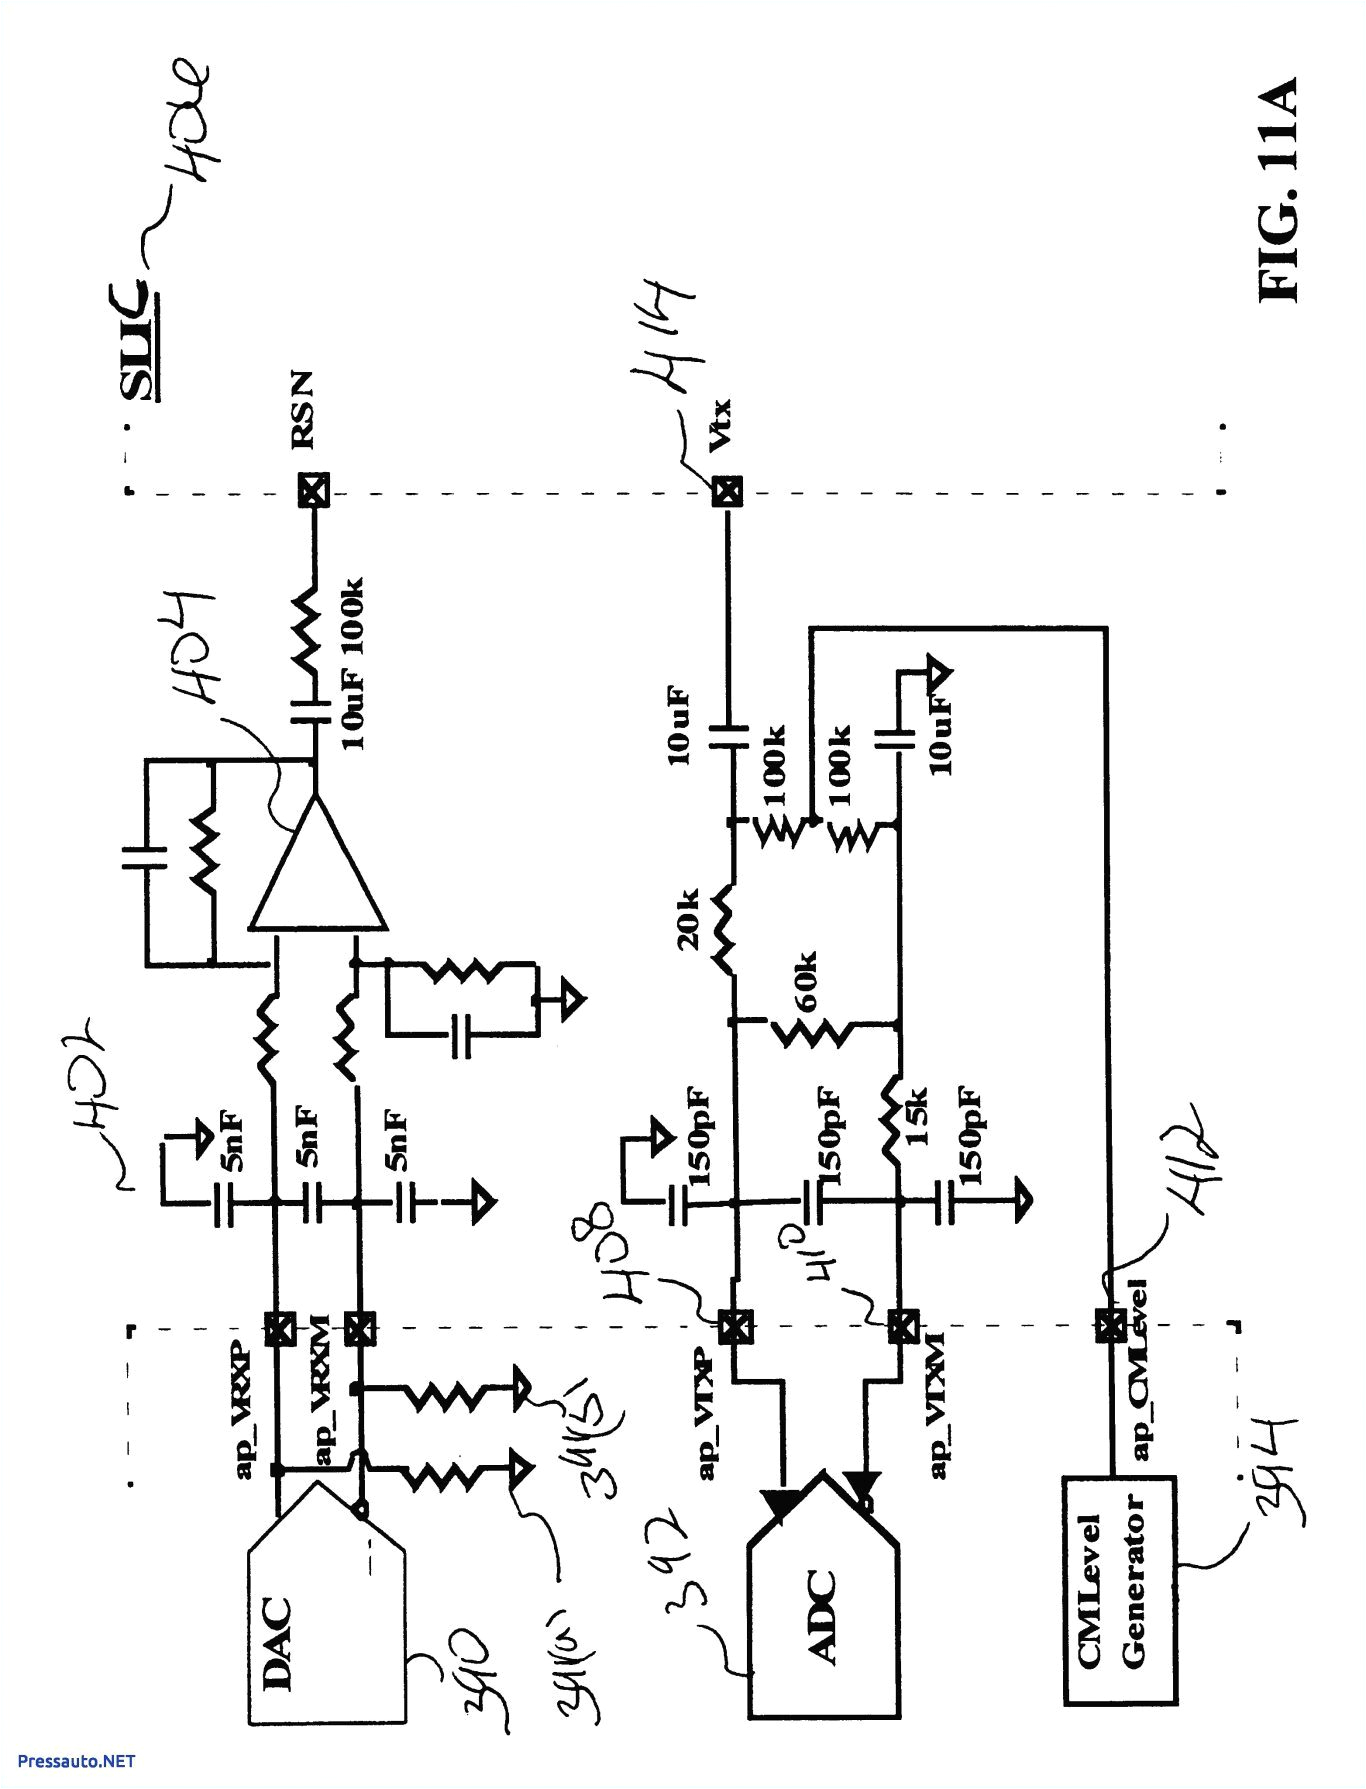 single phase 208 wiring diagram volovetsfo